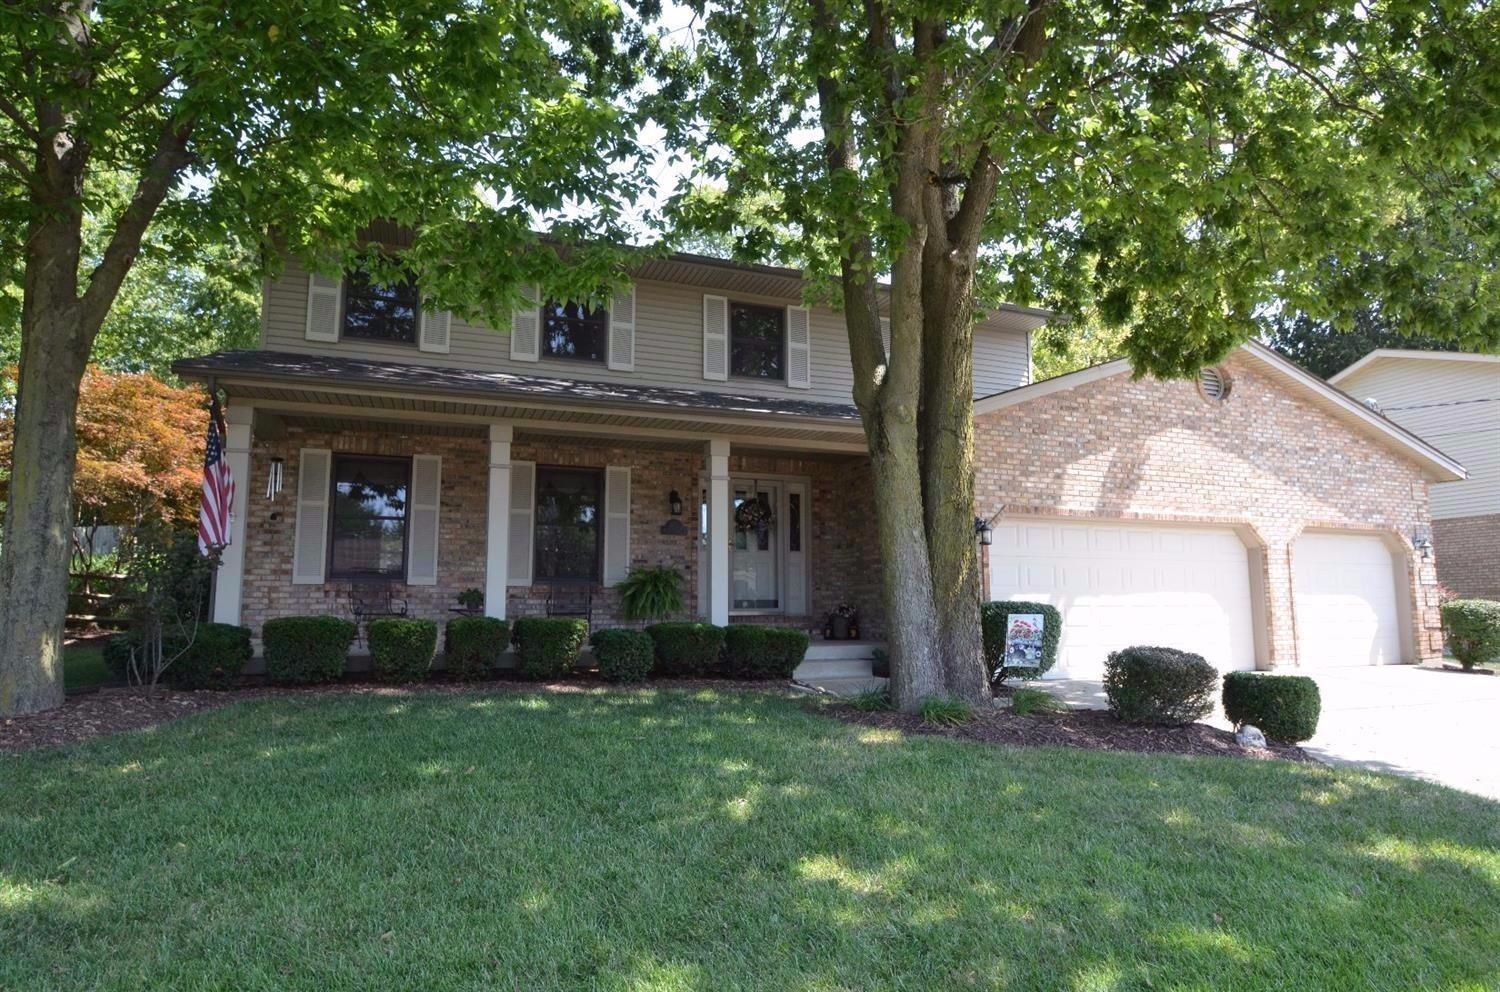 4706 McGreevy Dr Fairfield, OH